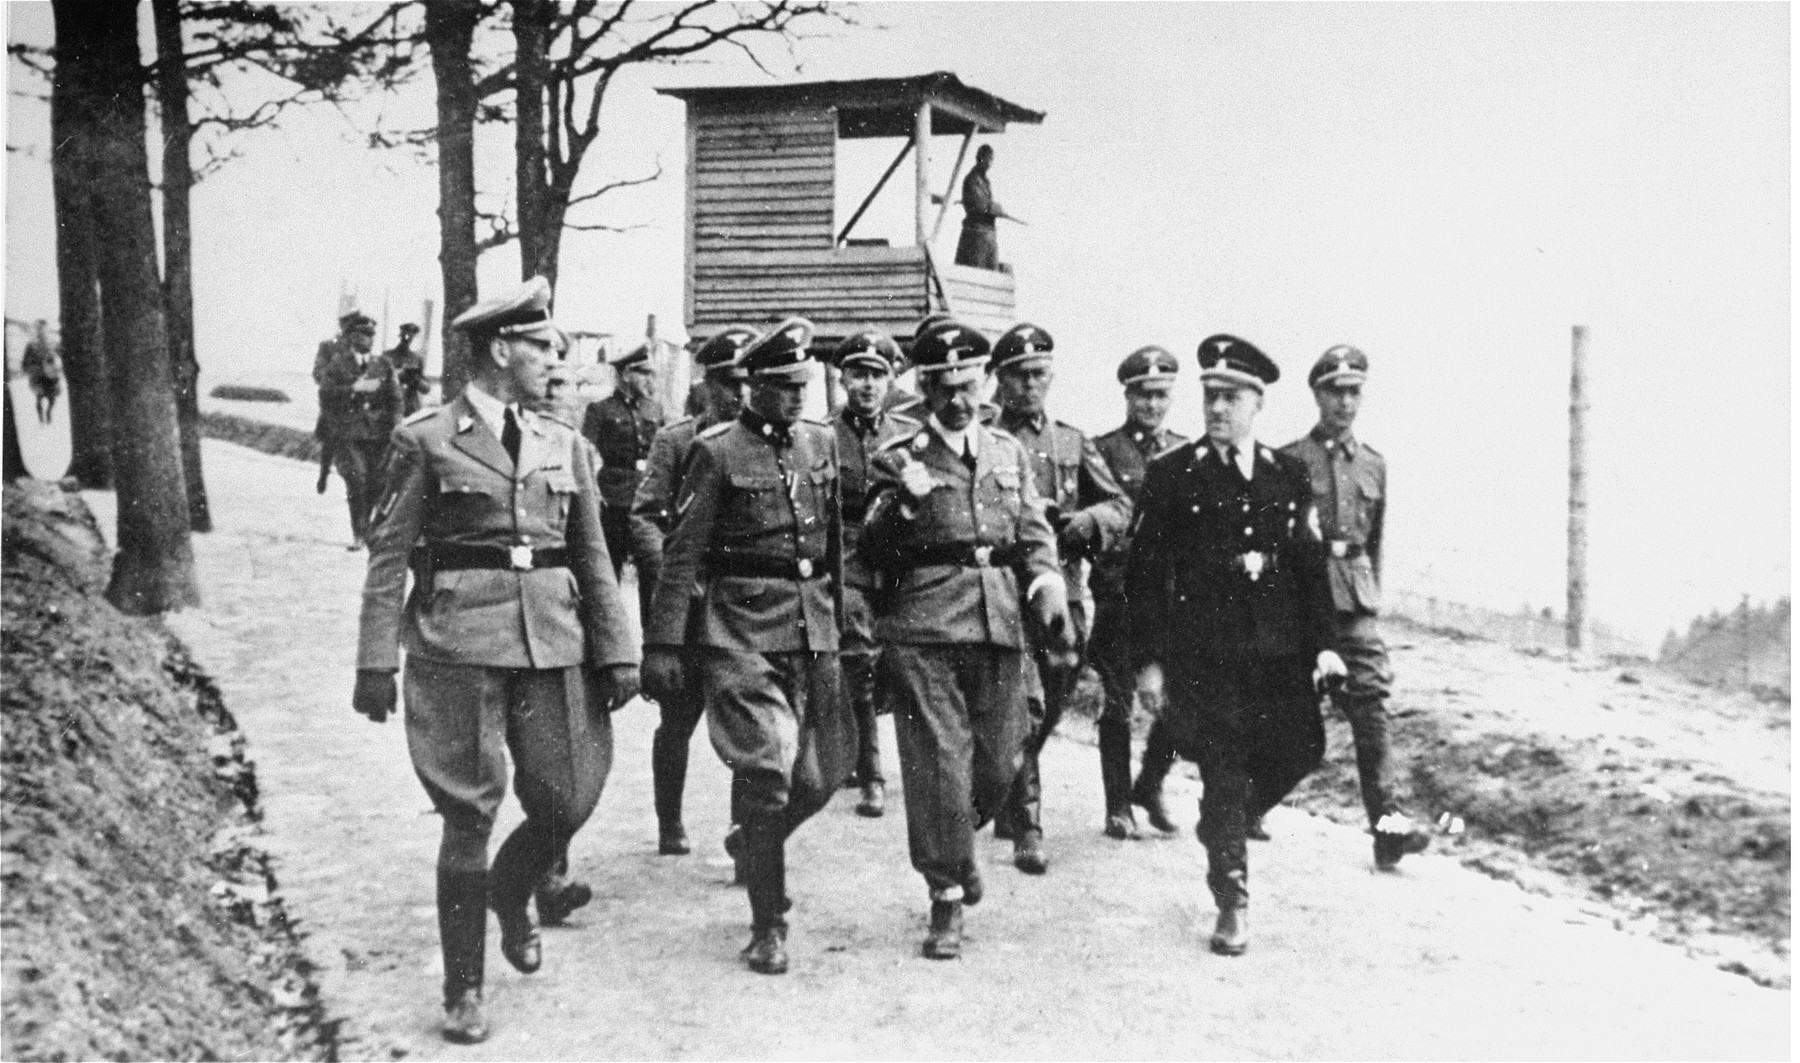 High ranking SS officials on an inspection tour of the Mauthausen concentration camp.    Pictured in the front row from left to right are Ernst Kaltenbrunner, Franz Ziereis, Heinrich Himmler, Karl Chmielewski, and  August Eigruber.  At the far right in the second row is George Bachmayer.